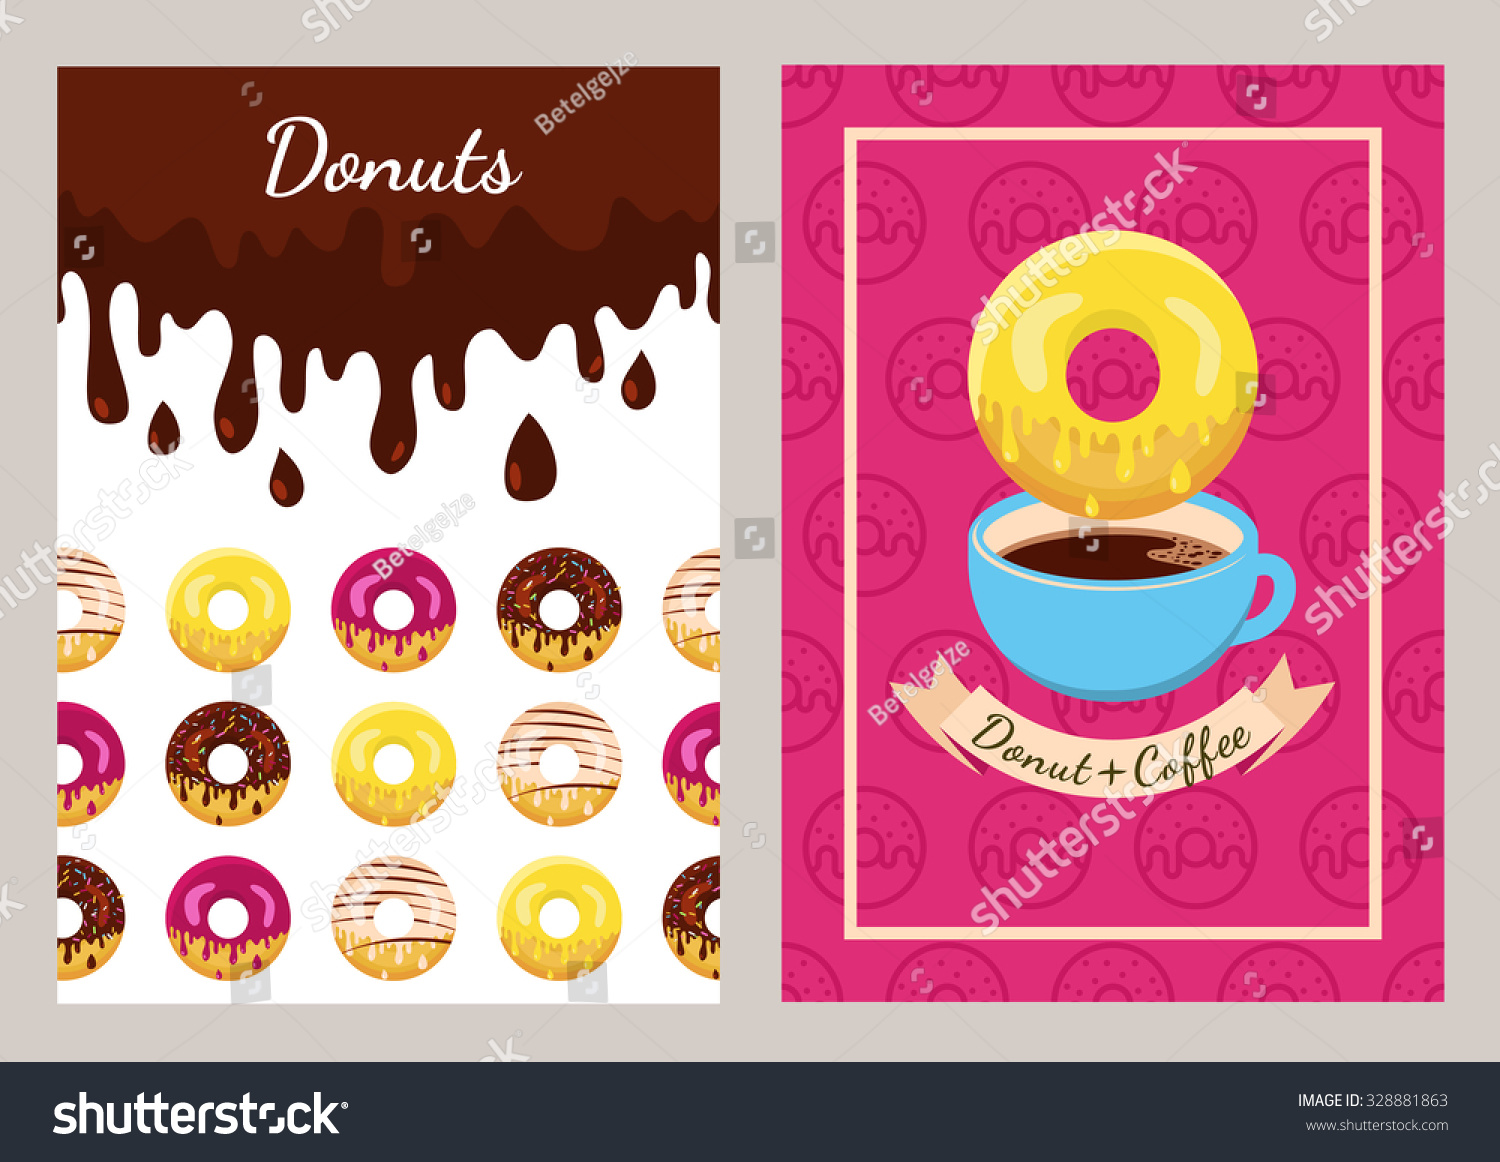 set vector design template coffee donuts stock vector  set of vector design template coffee and donuts pattern seamless fast food background